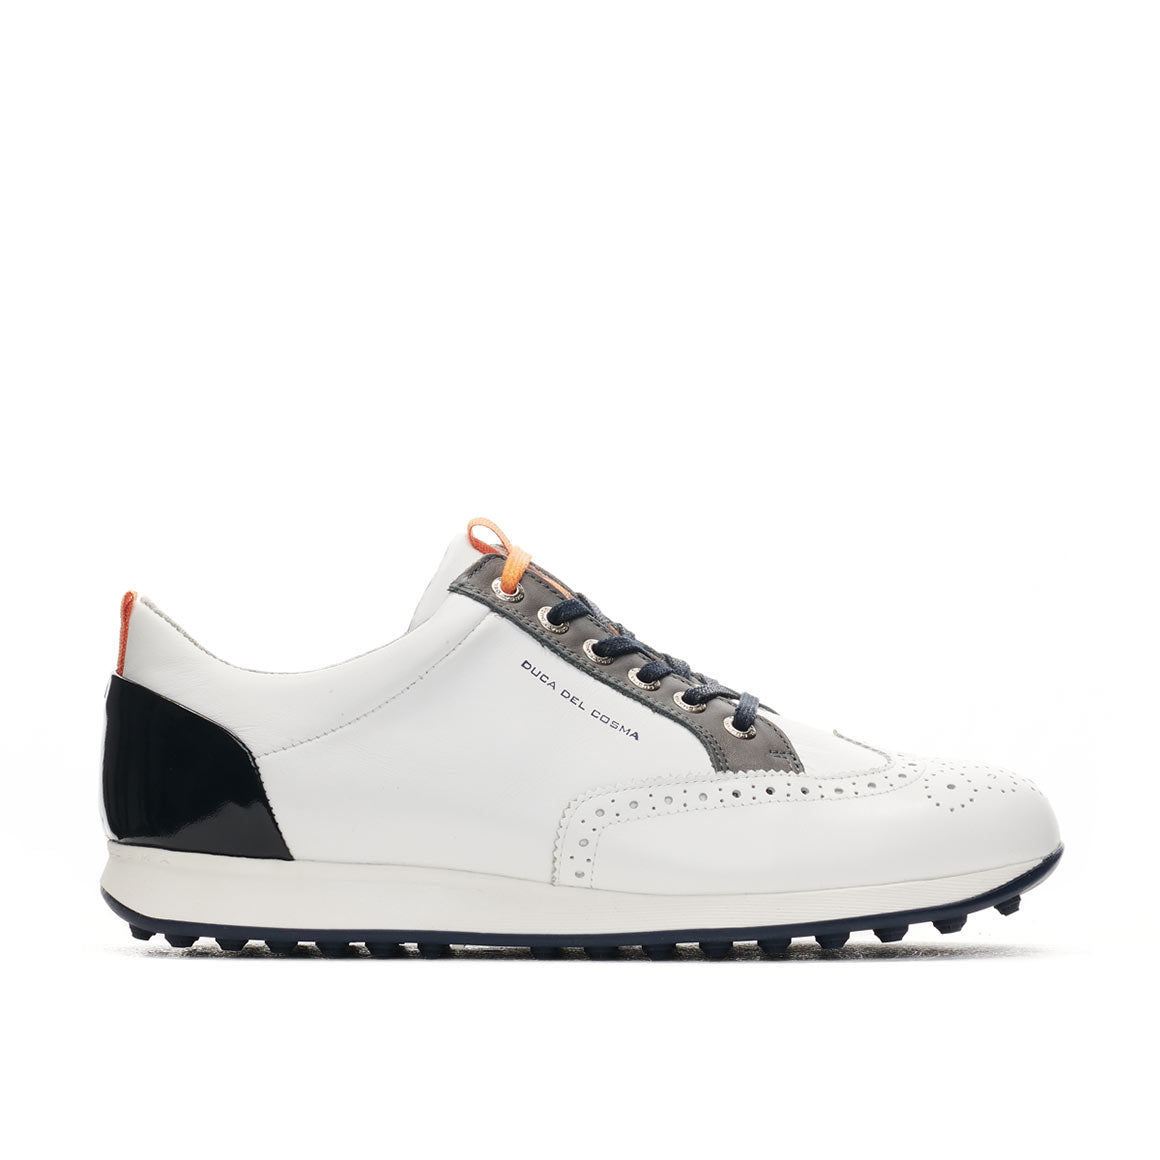 Men's Camelot White / Grey Golf Shoe